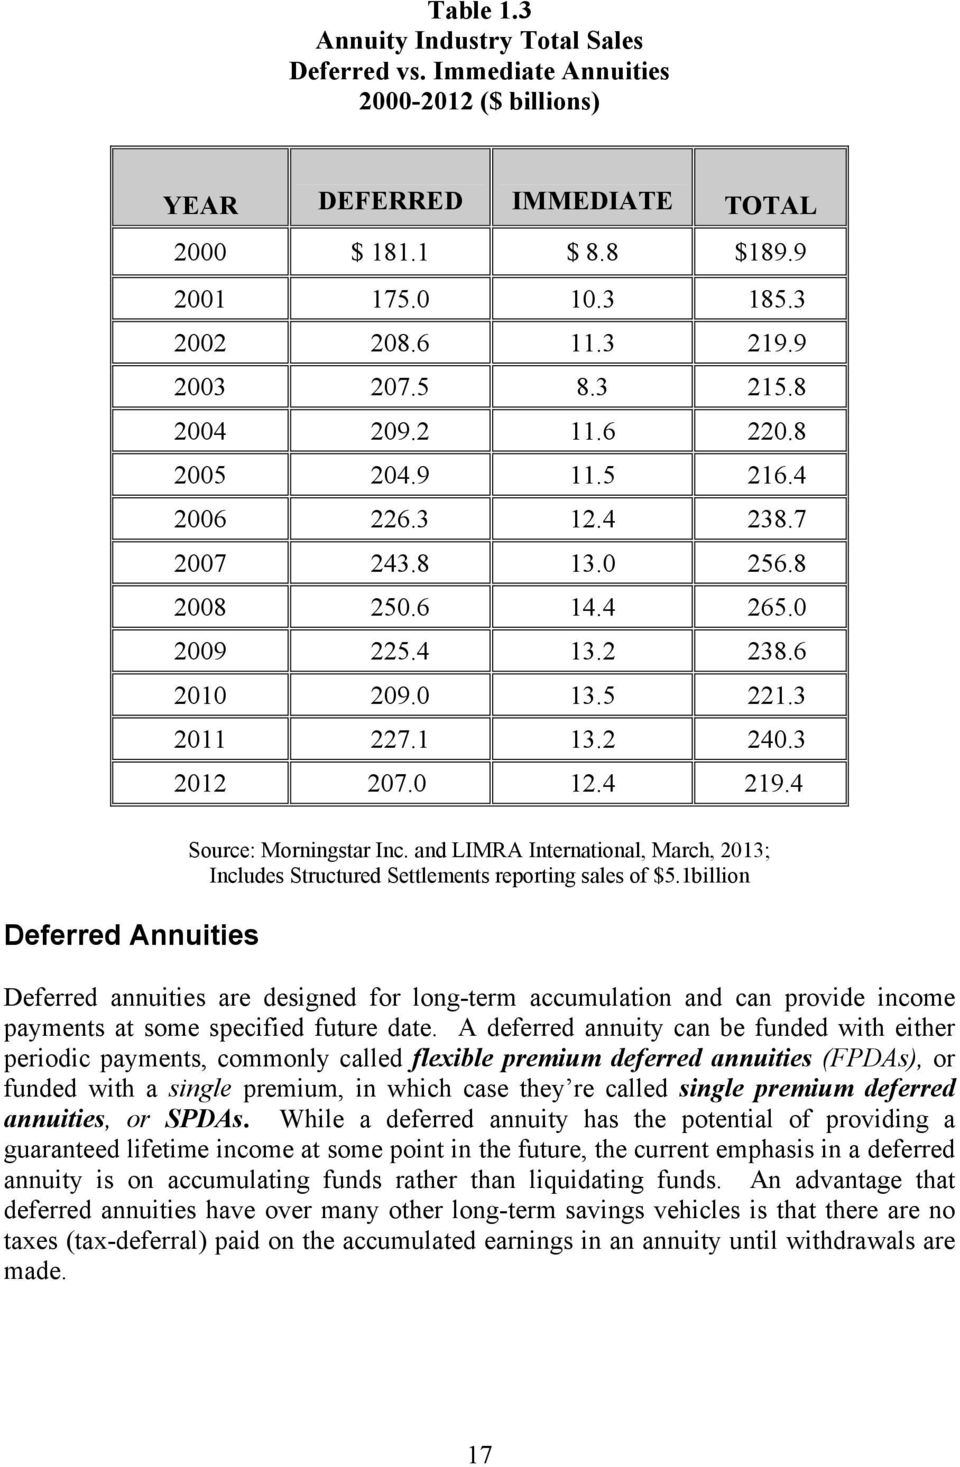 3 2012 207.0 12.4 219.4 Deferred Annuities Source: Morningstar Inc. and LIMRA International, March, 2013; Includes Structured Settlements reporting sales of $5.